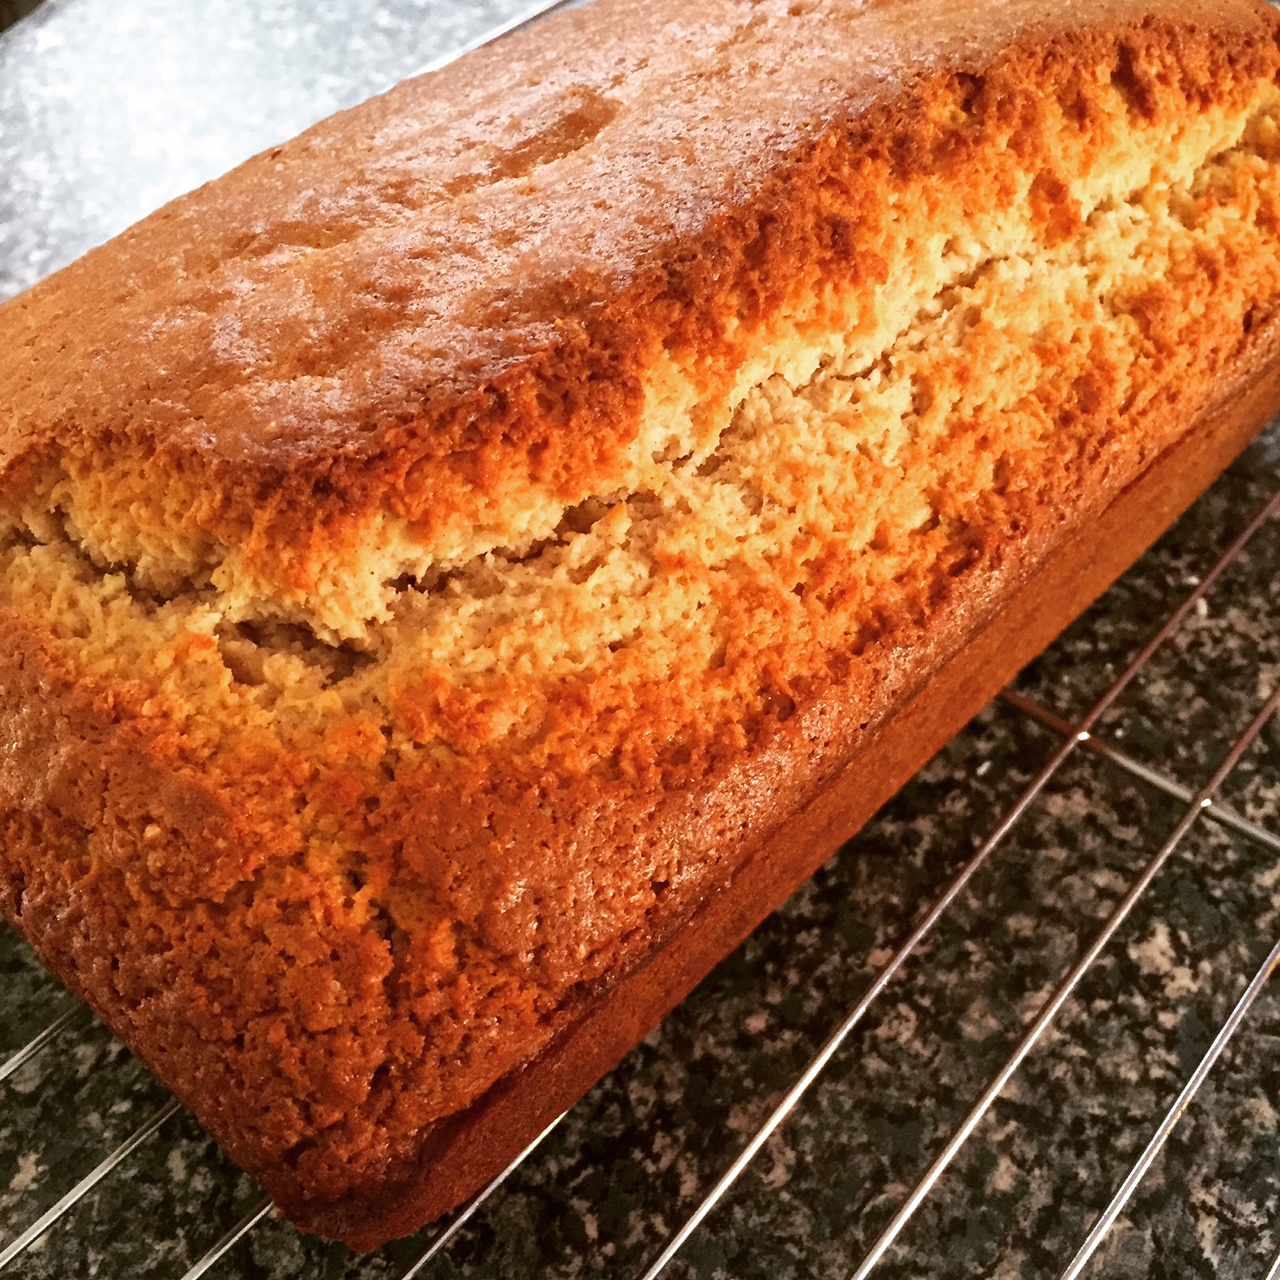 Coconut bread from the Smitten Kitchen's recipe